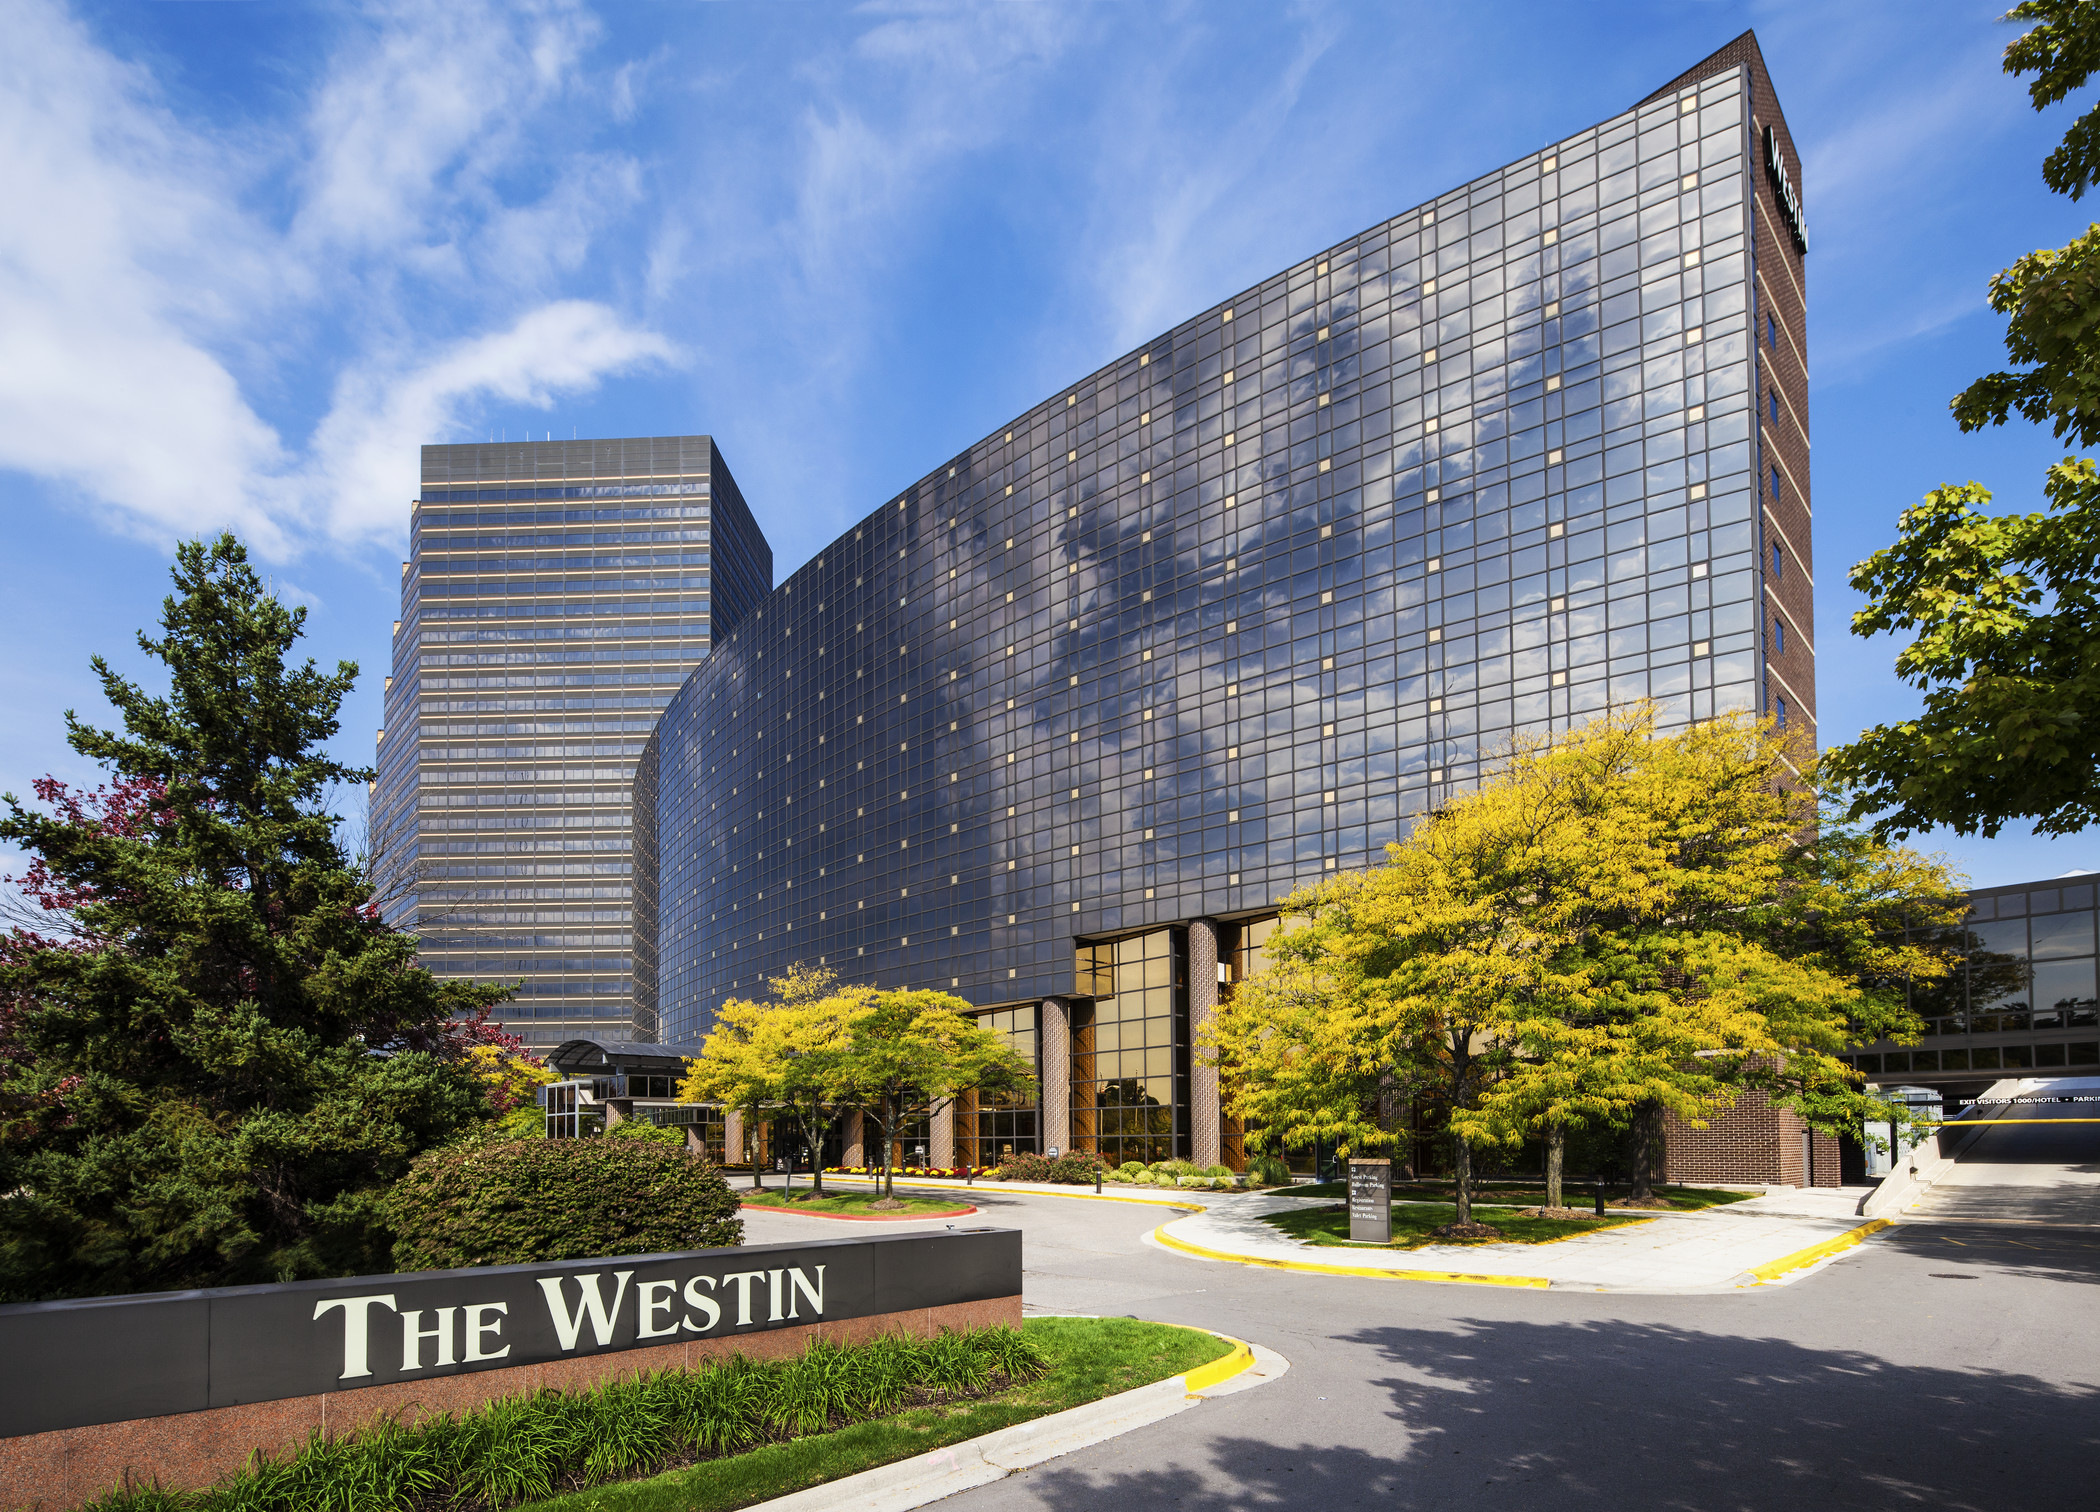 The Westin Southfield Detroit Brings the Pure Room Experience to Southfield Town Center